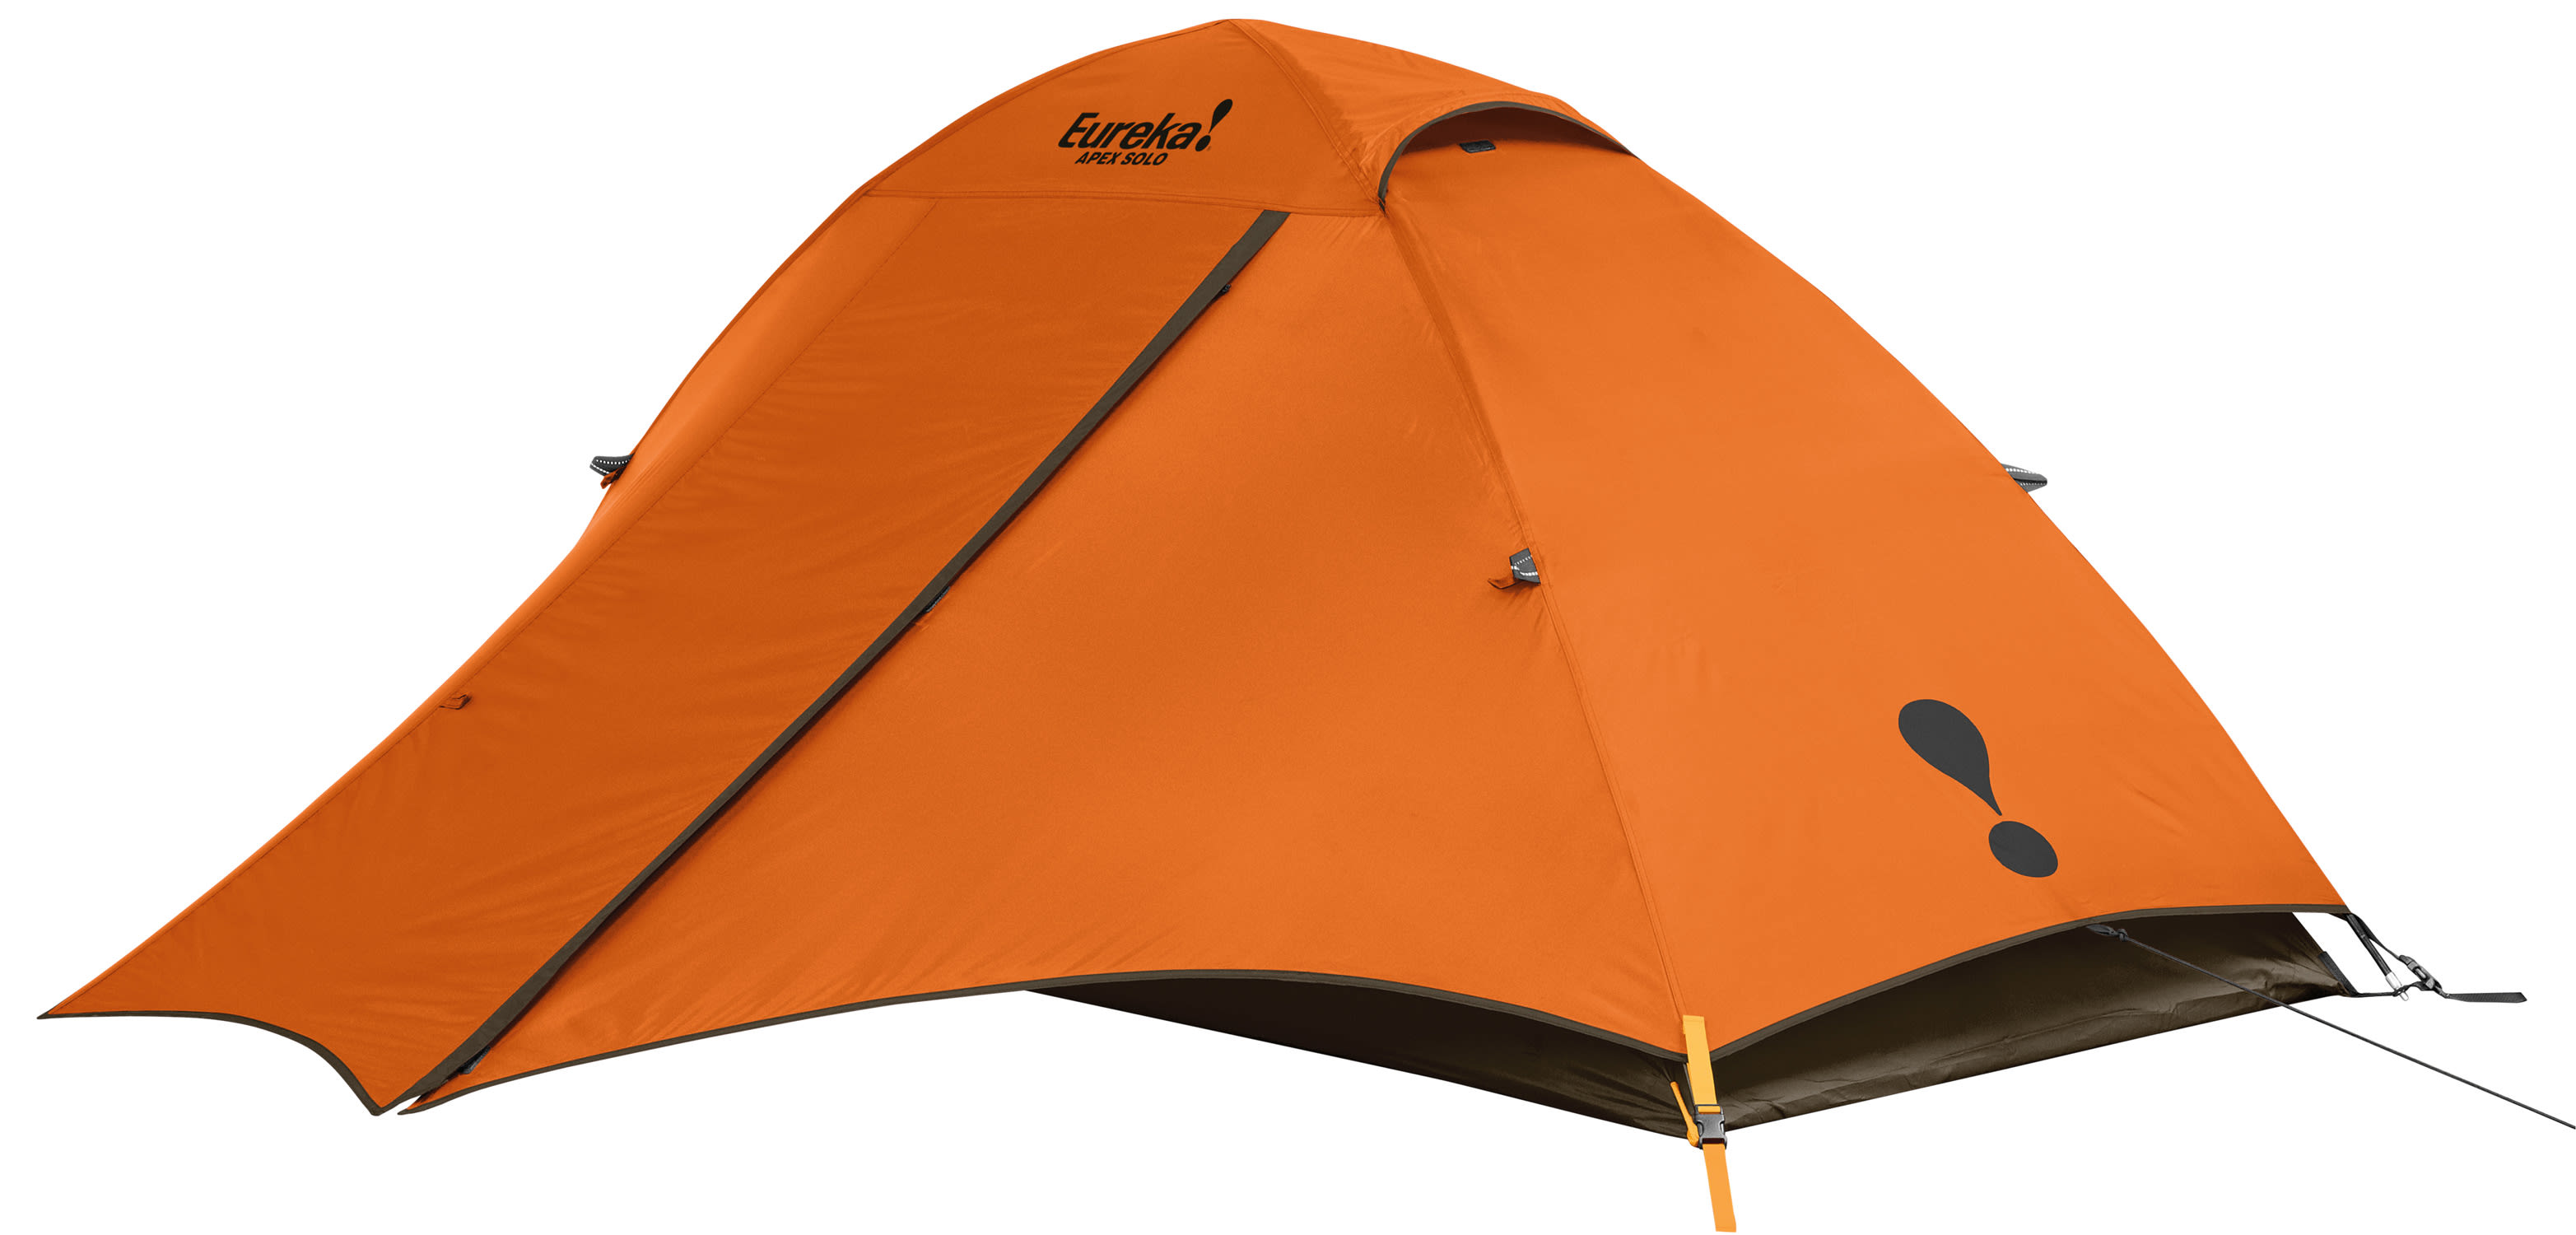 Eureka Apex Solo 1 Person Tent - thumbnail 1  sc 1 st  The House & On Sale Eureka Apex Solo 1 Person Tent up to 60% off